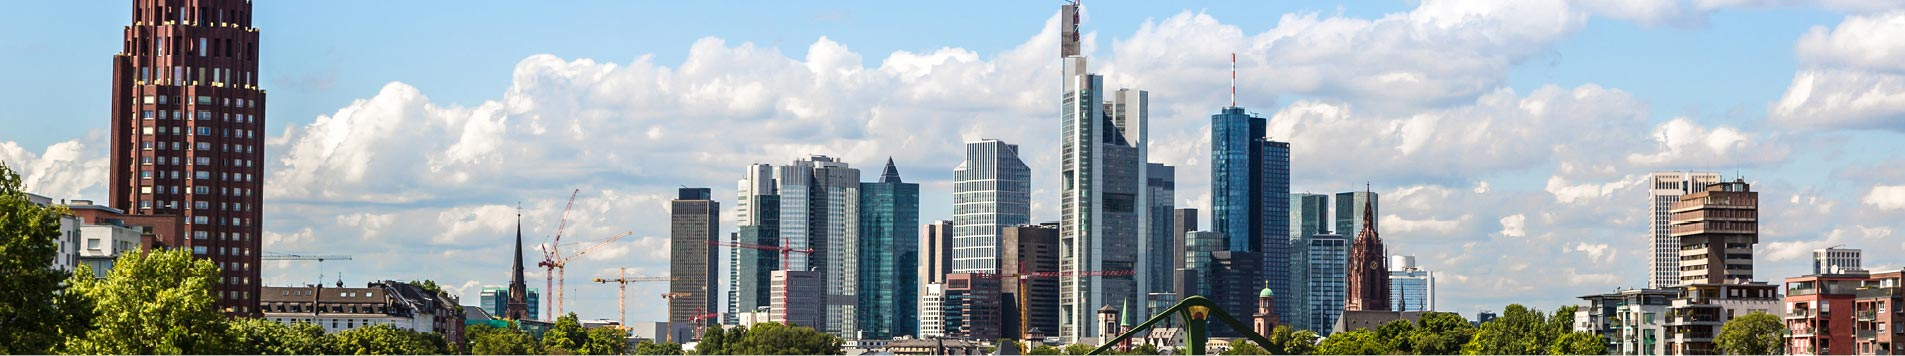 Investor Relations Frankfurt City - Germany